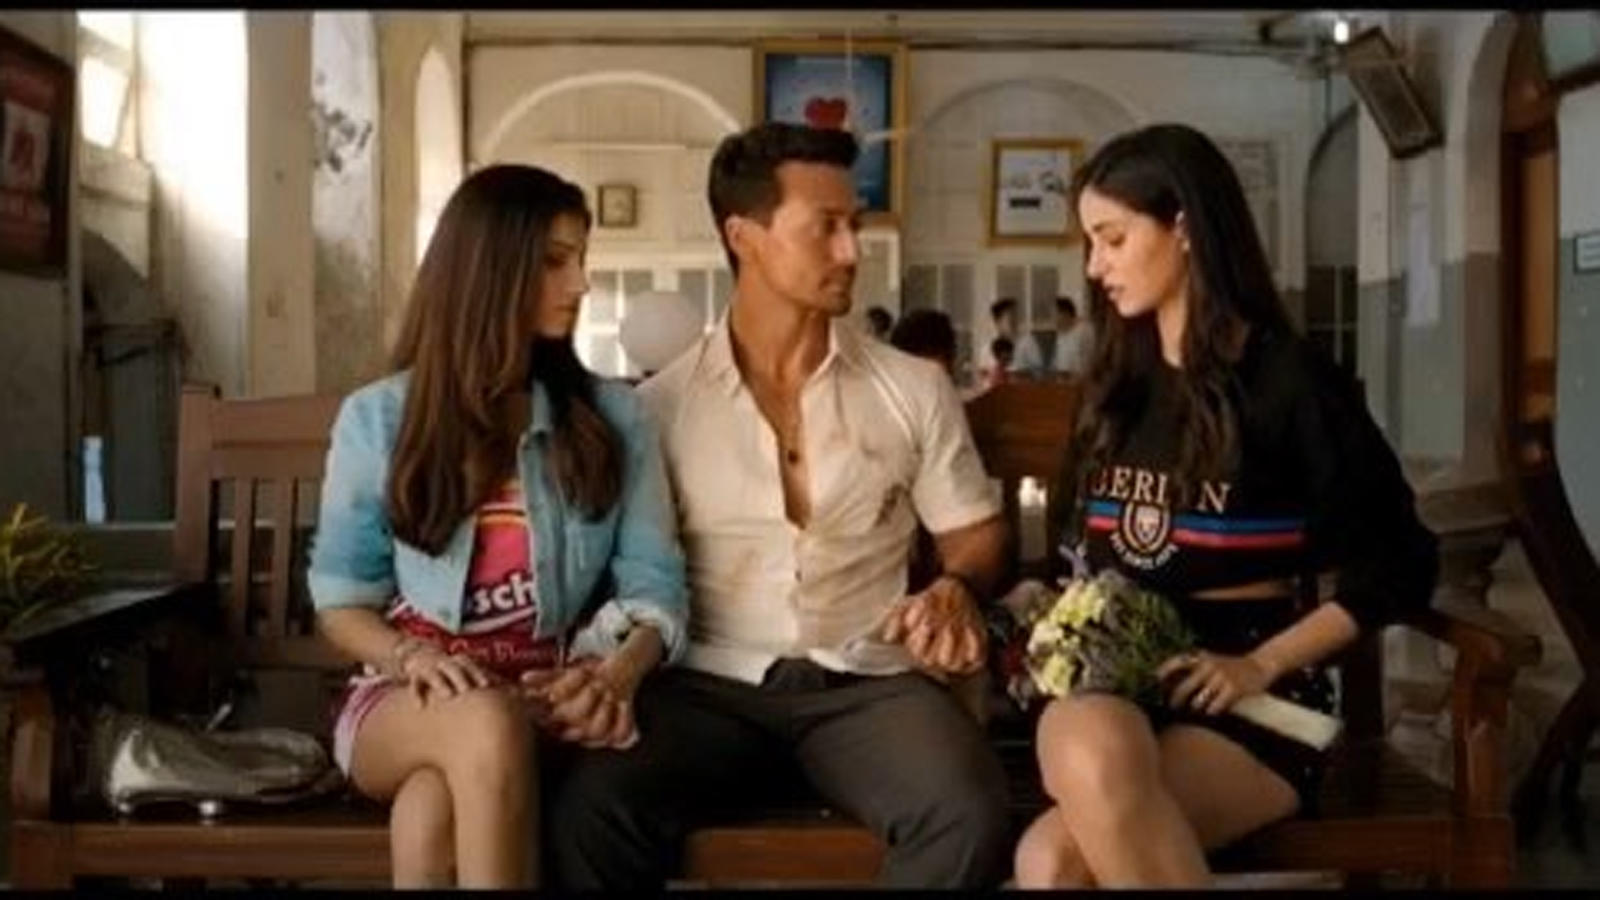 Trailer of Tiger Shroff, Tara Sutaria and Ananya Panday starrer 'Student of the Year 2' launched